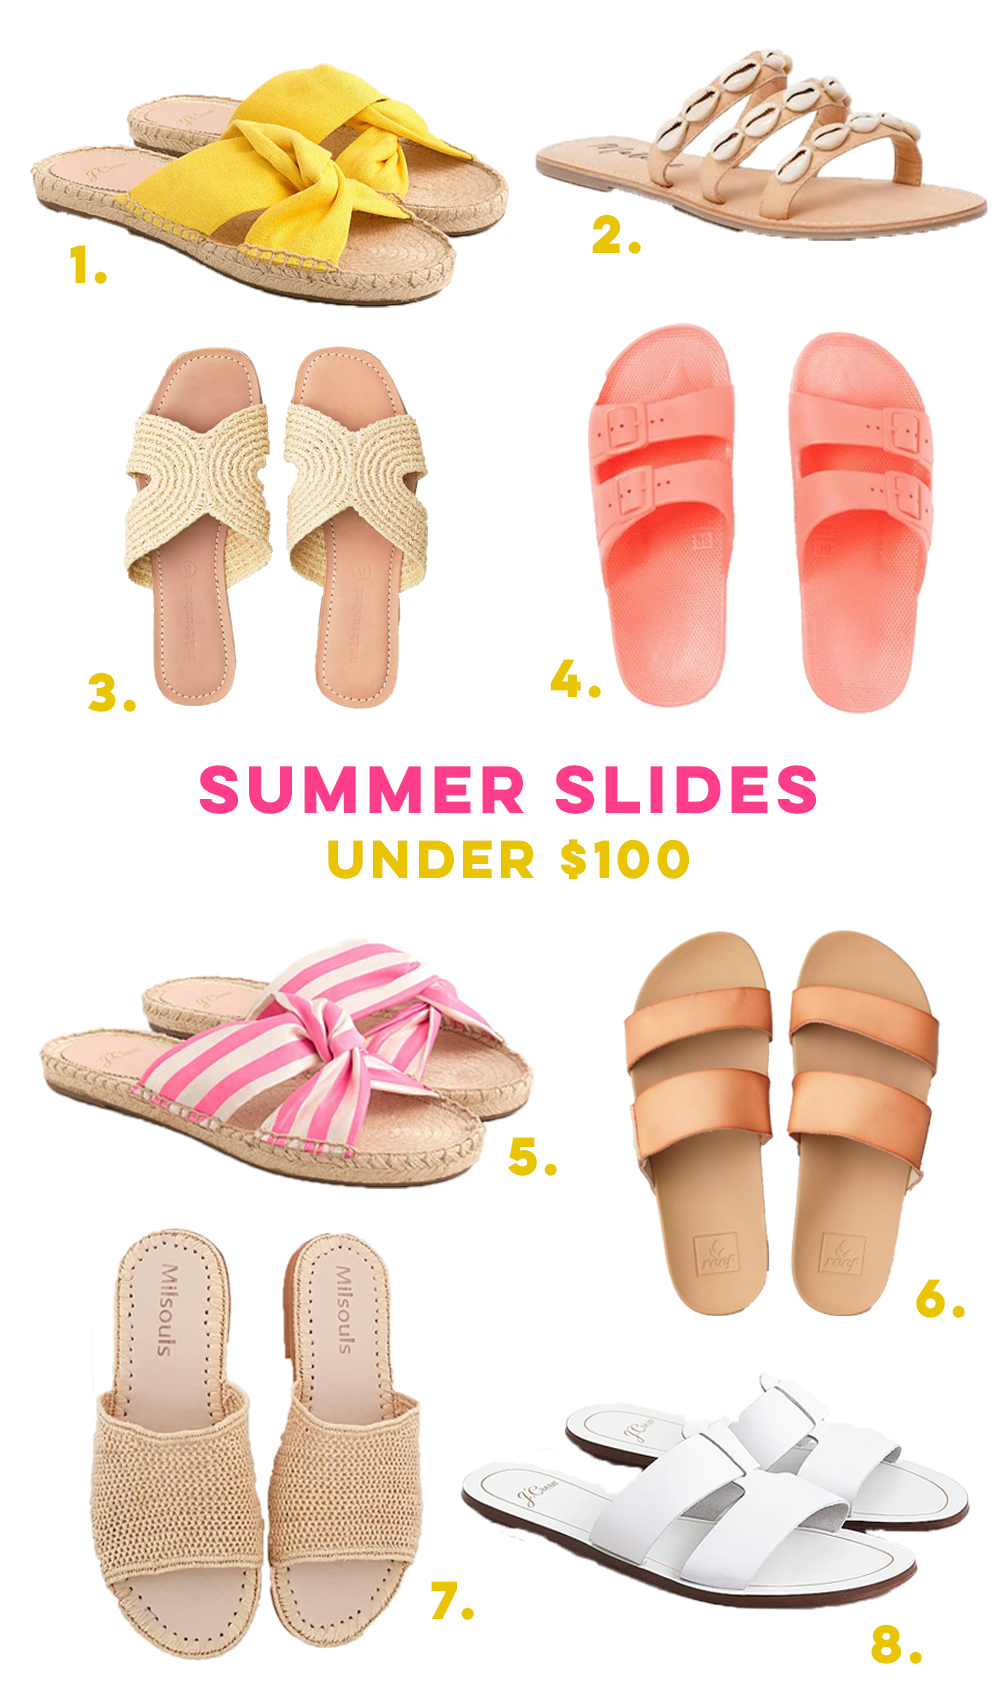 Summer Sandals Under $100 / How to Style Sandals for Summer / What to Wear with Dresses during Summer / Warm Weather Style Inspiration / How to Wear Sandals with Shorts - Sunshine Style, A Florida Based Fashion and Lifestyle blog by Katie McCarty